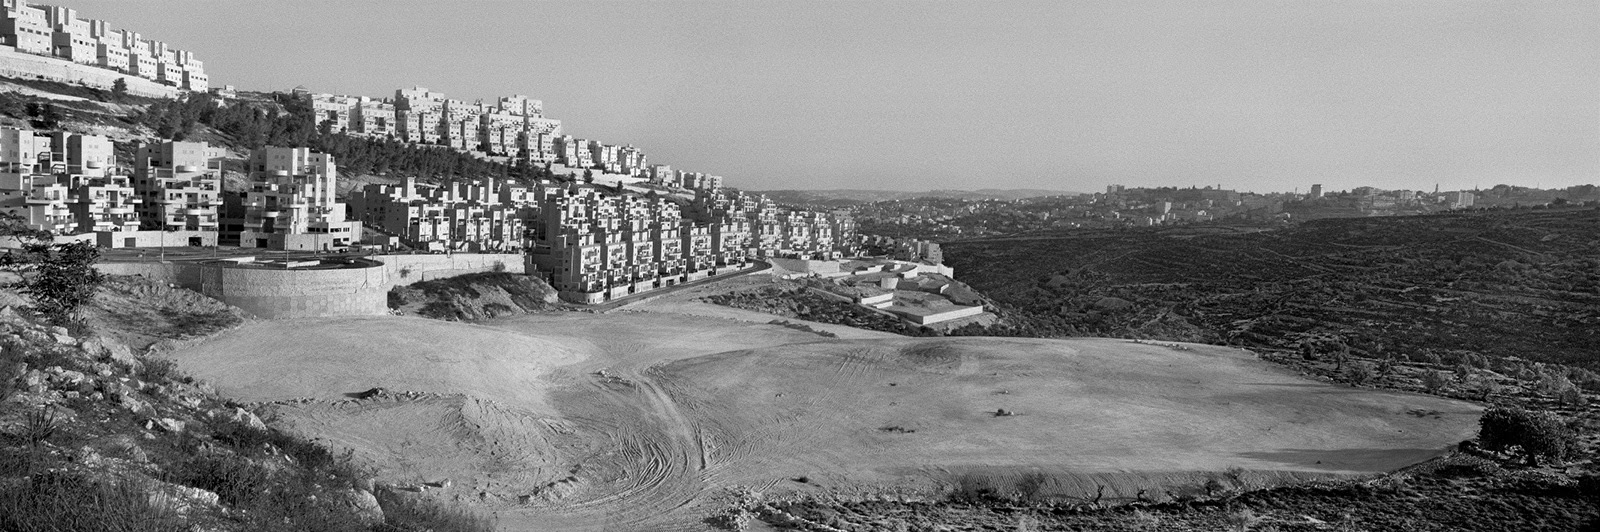 The Har Homa settlement, on a hill opposite Bethlehem, West Bank, 2009; photograph by Josef Koudelka from the exhibition 'This Place'